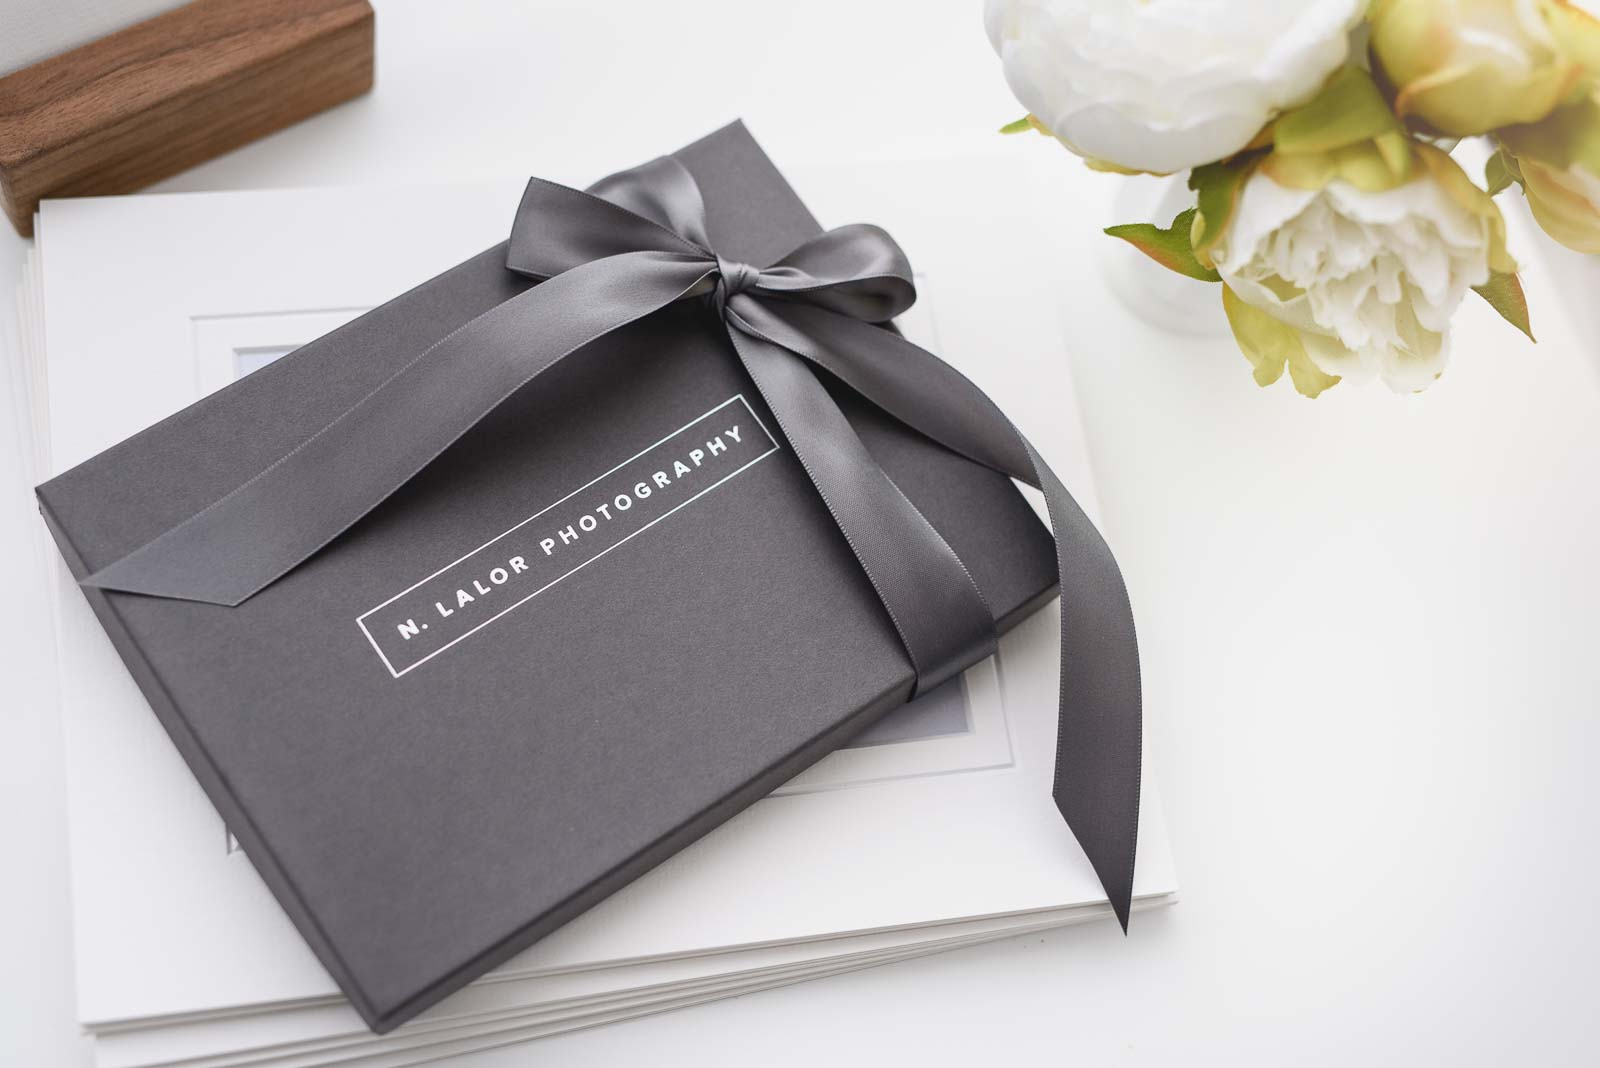 Image of a photography gift box from N. Lalor Photography in Greenwich, Connecticut.